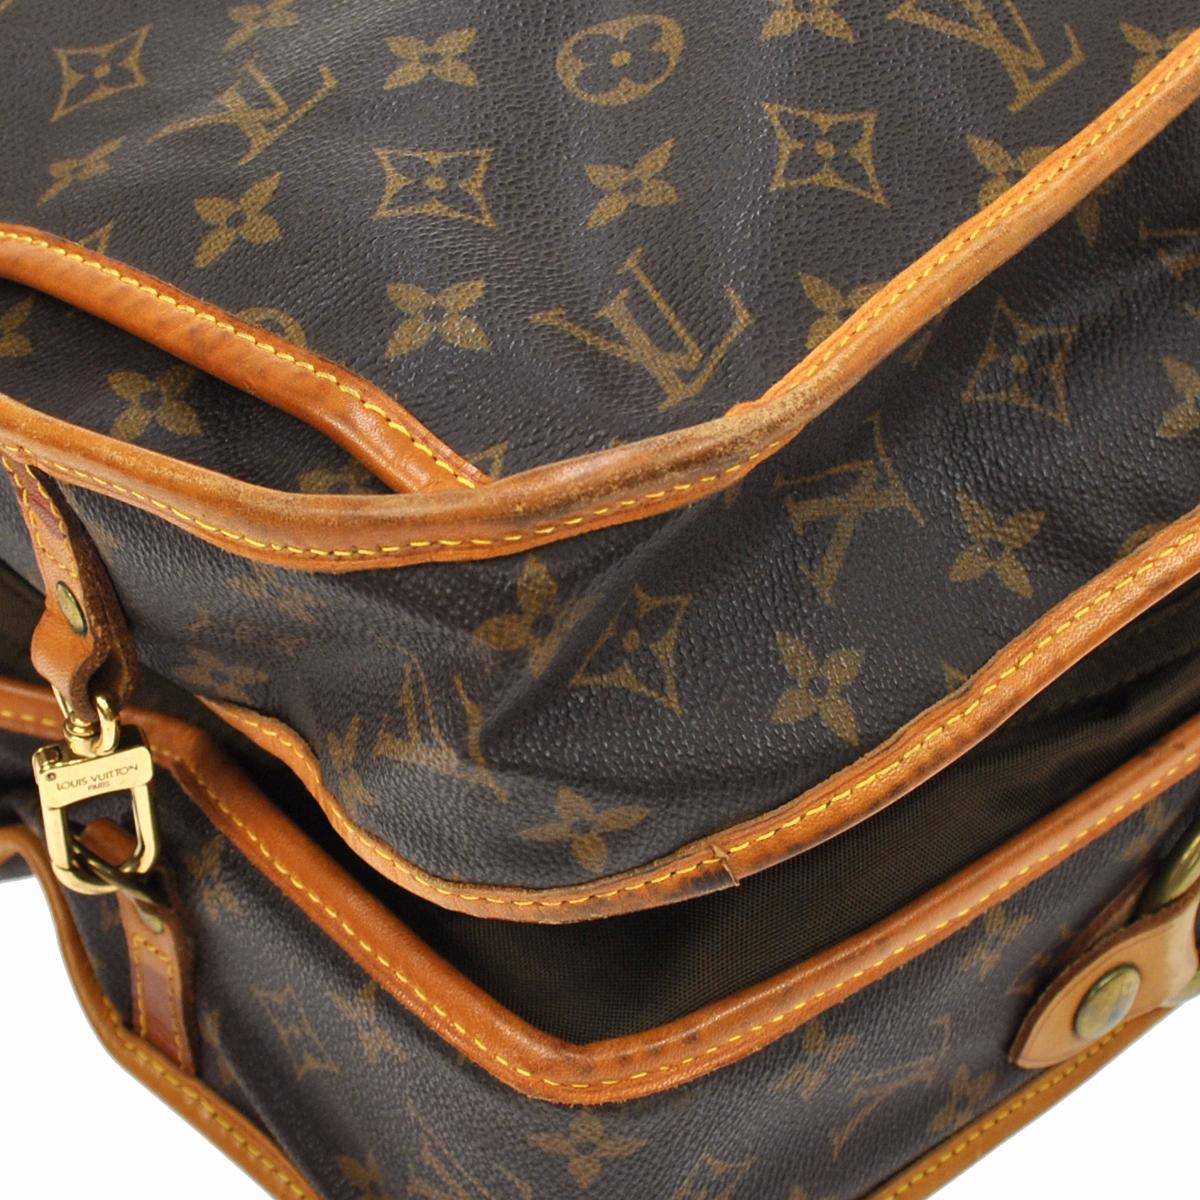 8502e7ea69eb Louis Vuitton Portable Garment Cover Handbag Monogram VTG - BkaysVintage